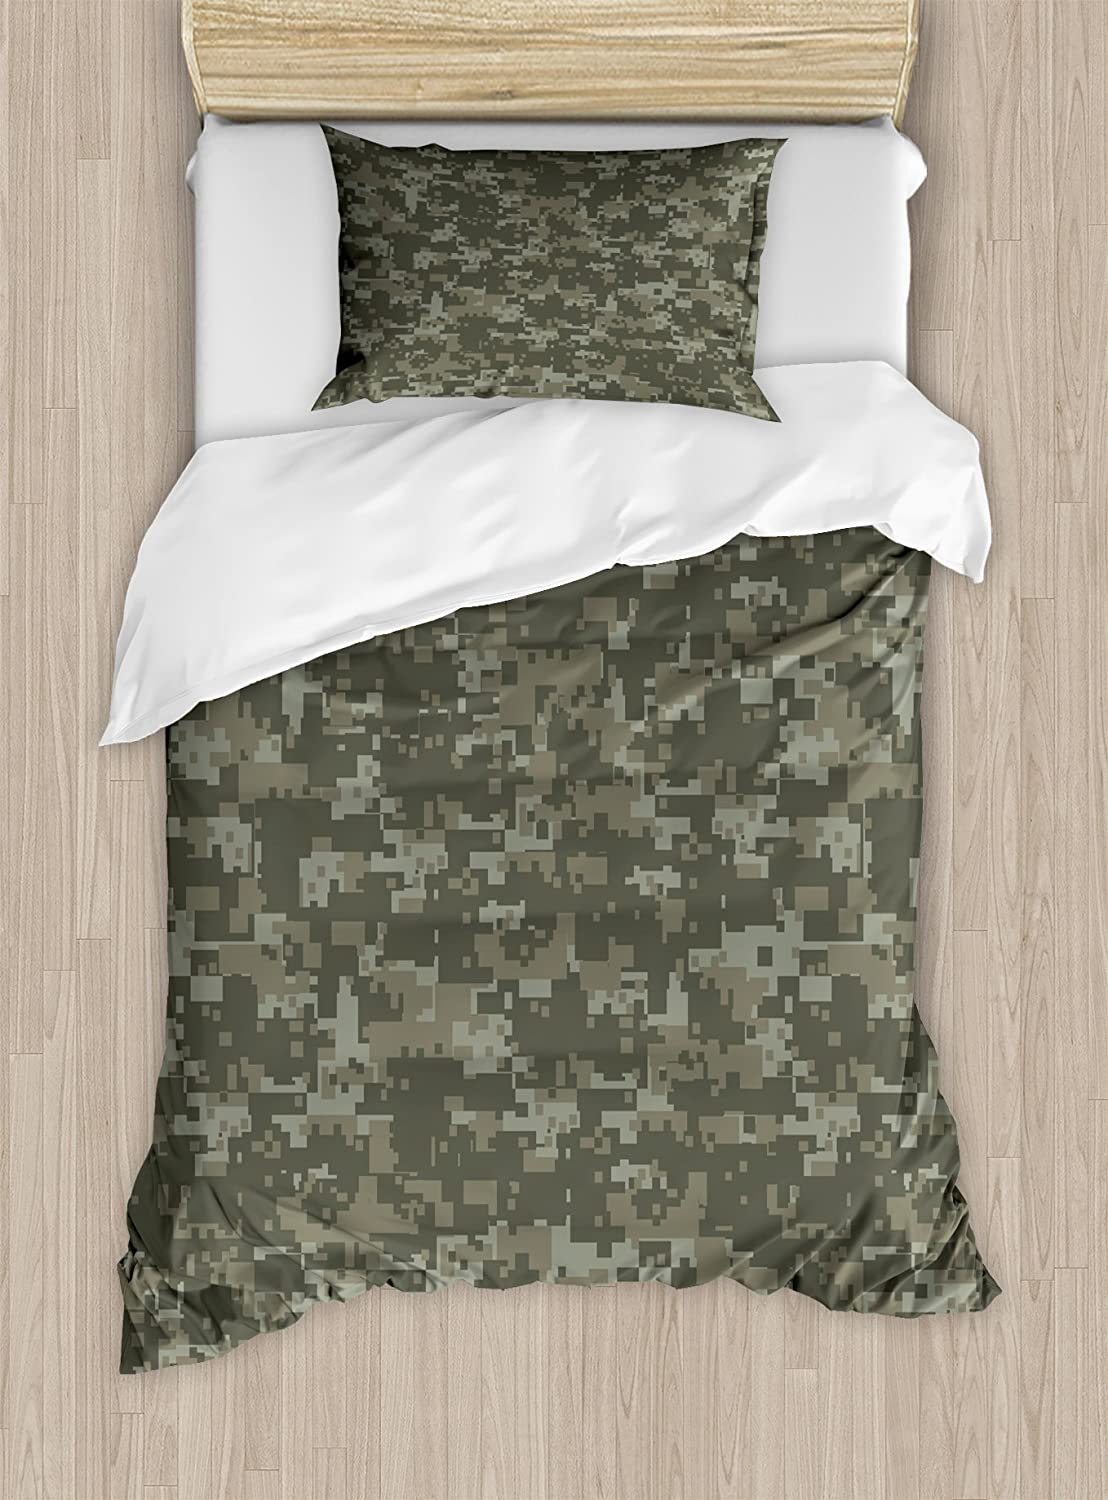 Ambesonne Camouflage Duvet Cover Set, Monochrome Attire Pattern Concealing Hiding in The Woods Themed Print, Decorative 2 Piece Bedding Set with 1 Pillow Sham, Twin Size, Army Green